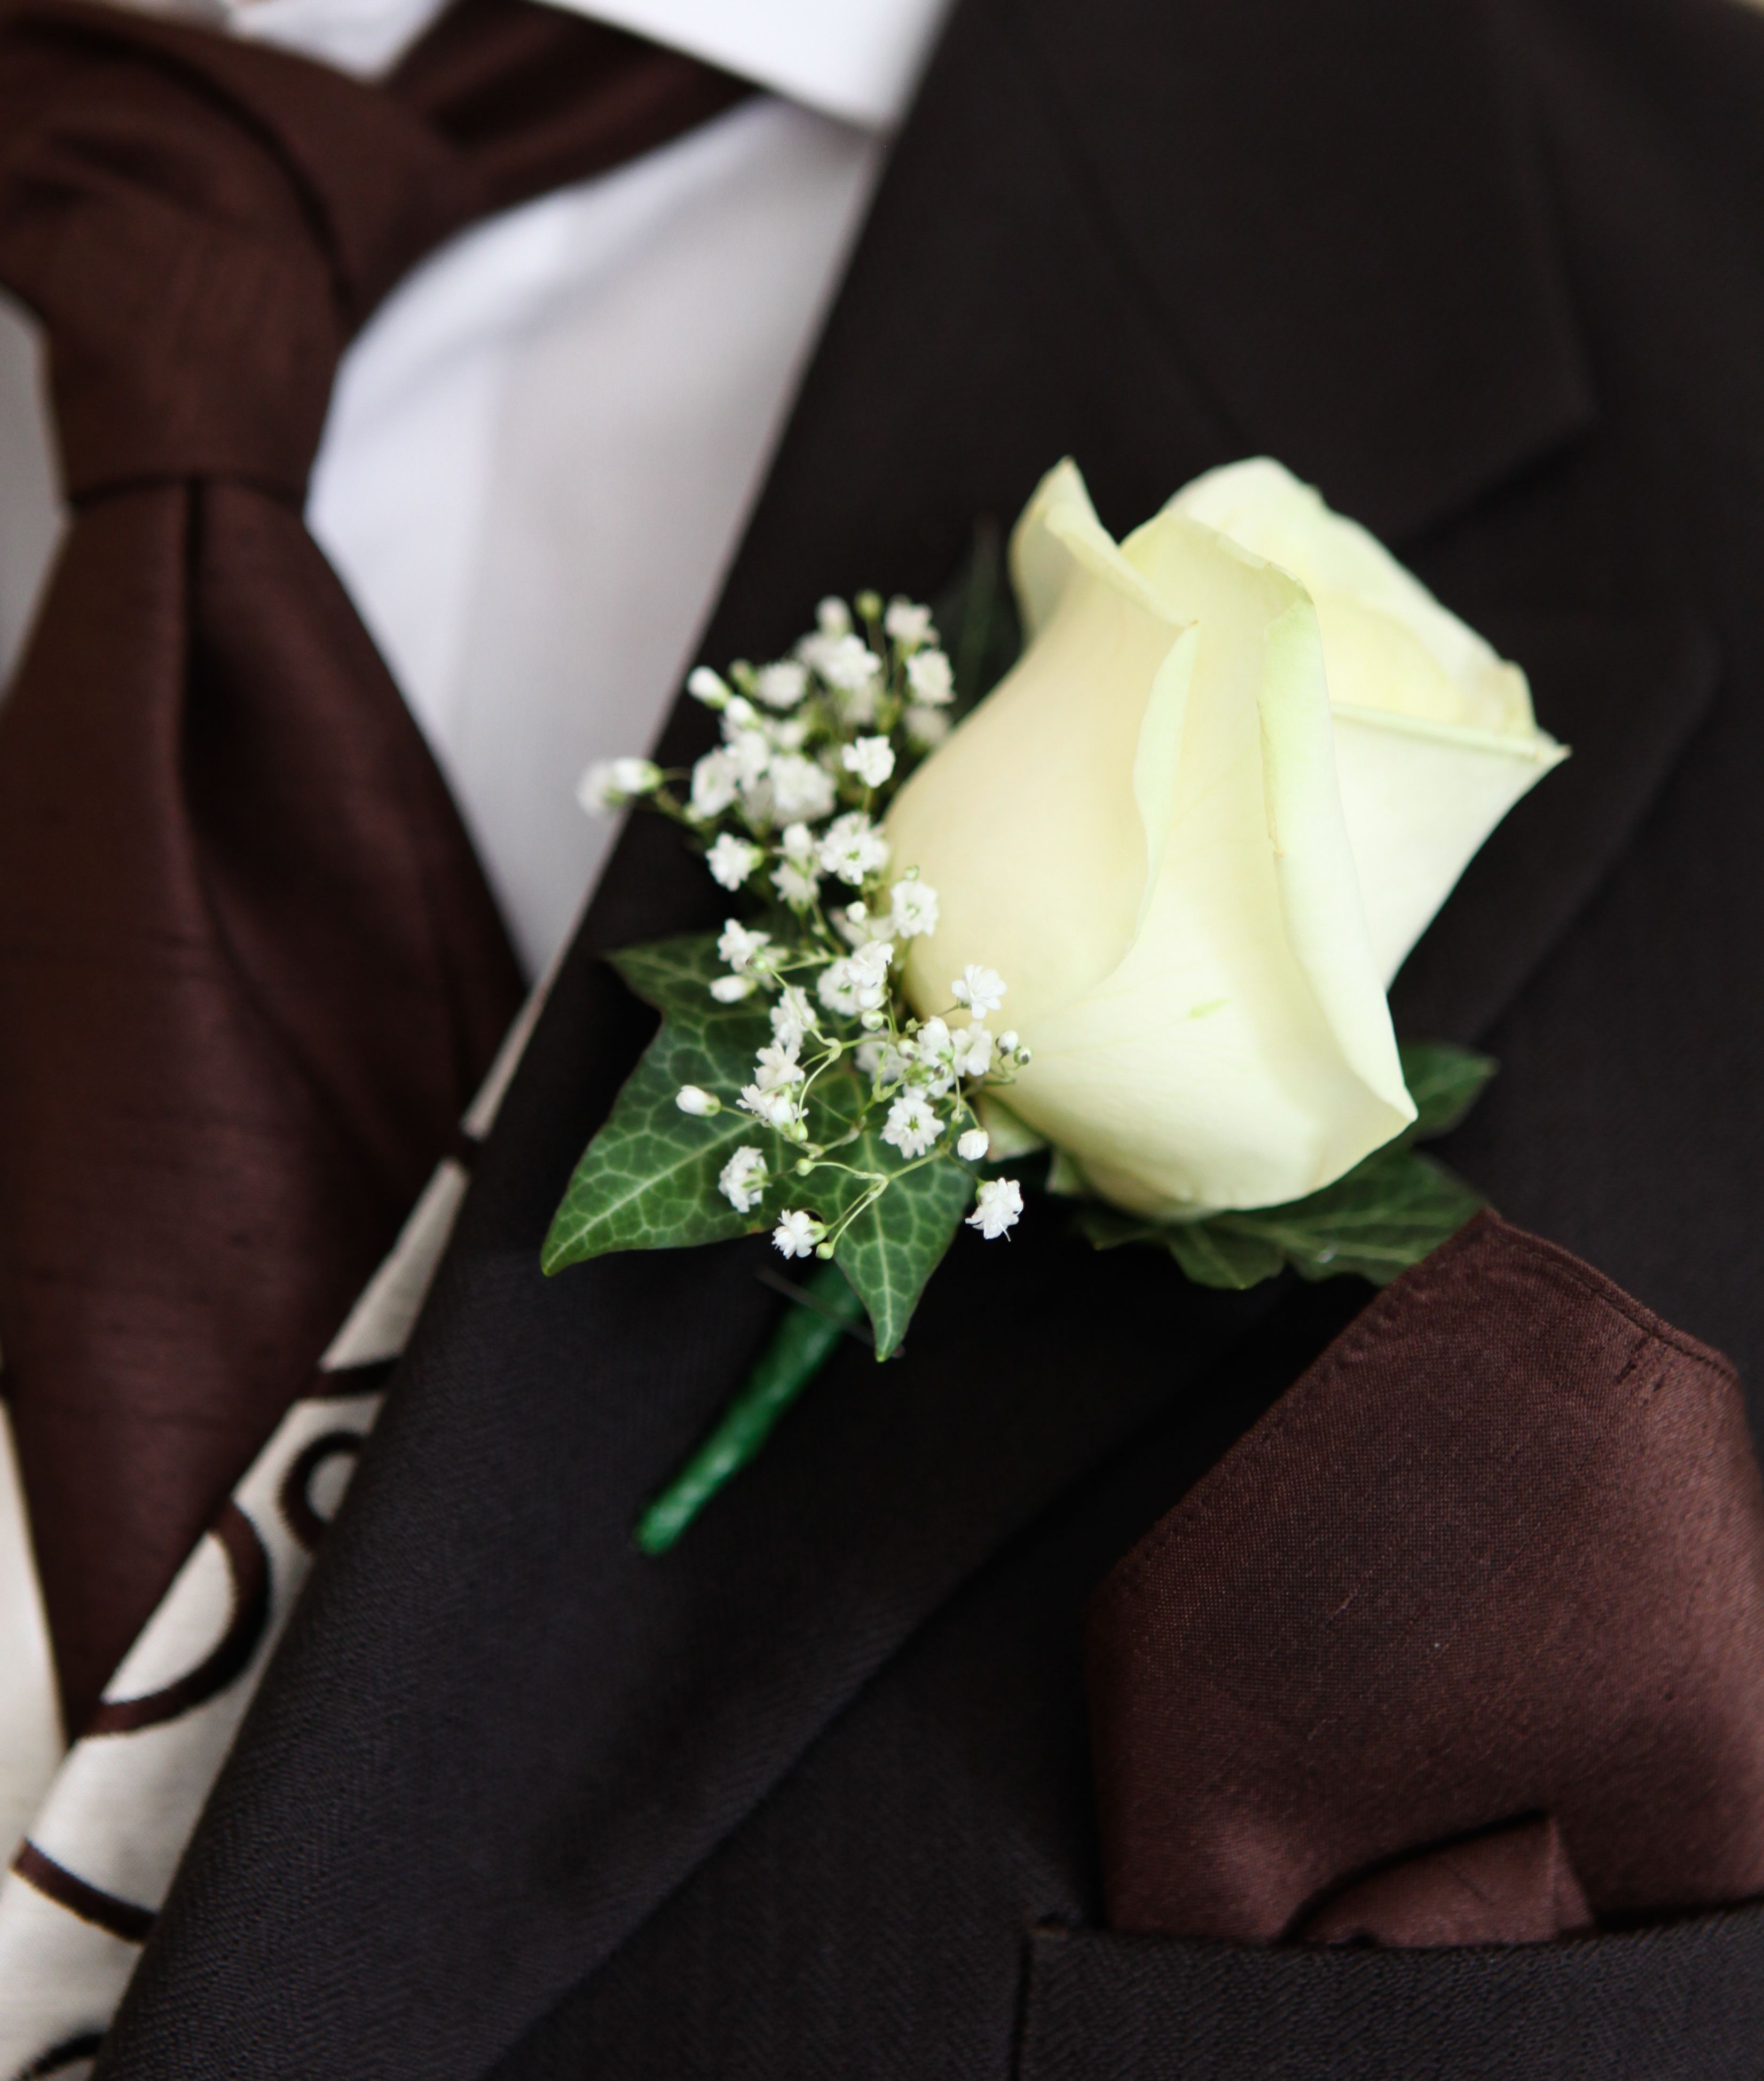 Rose Onhole For The Ushers With Ivy But Not Gypsophila